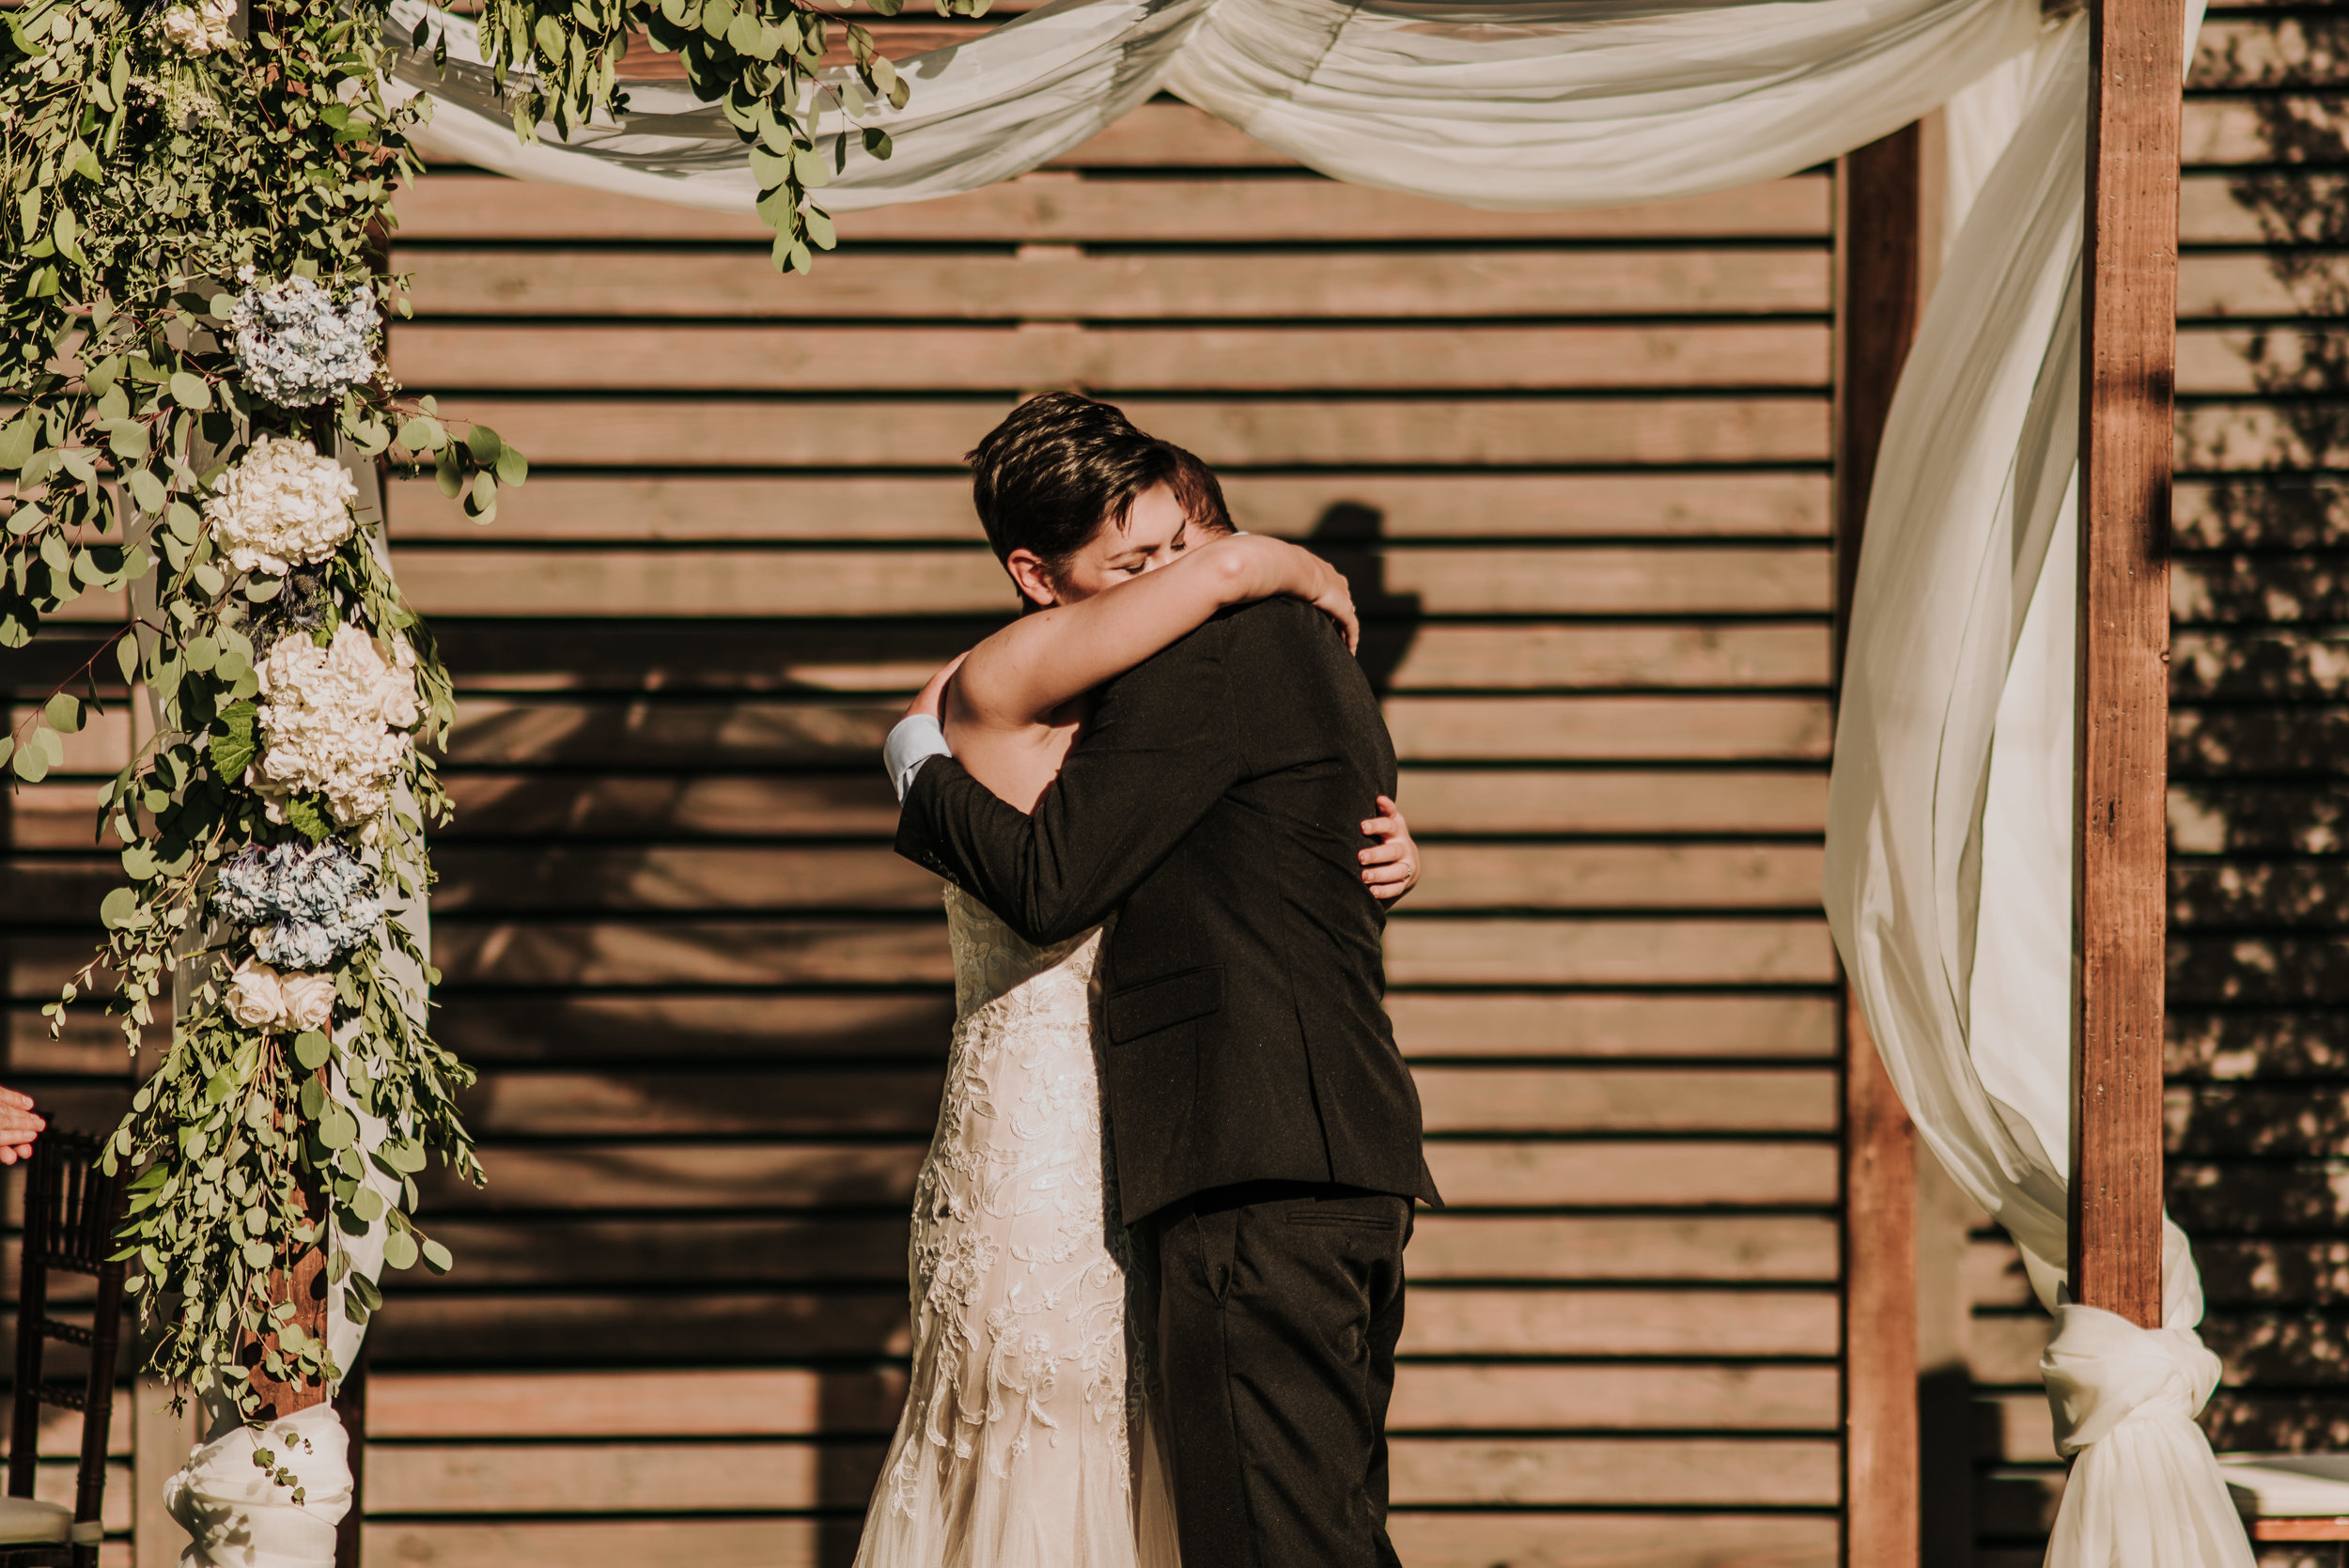 2019-07-21_Danielle_and_Brandon_-_Married_-_Costa_Mesa-500.jpg